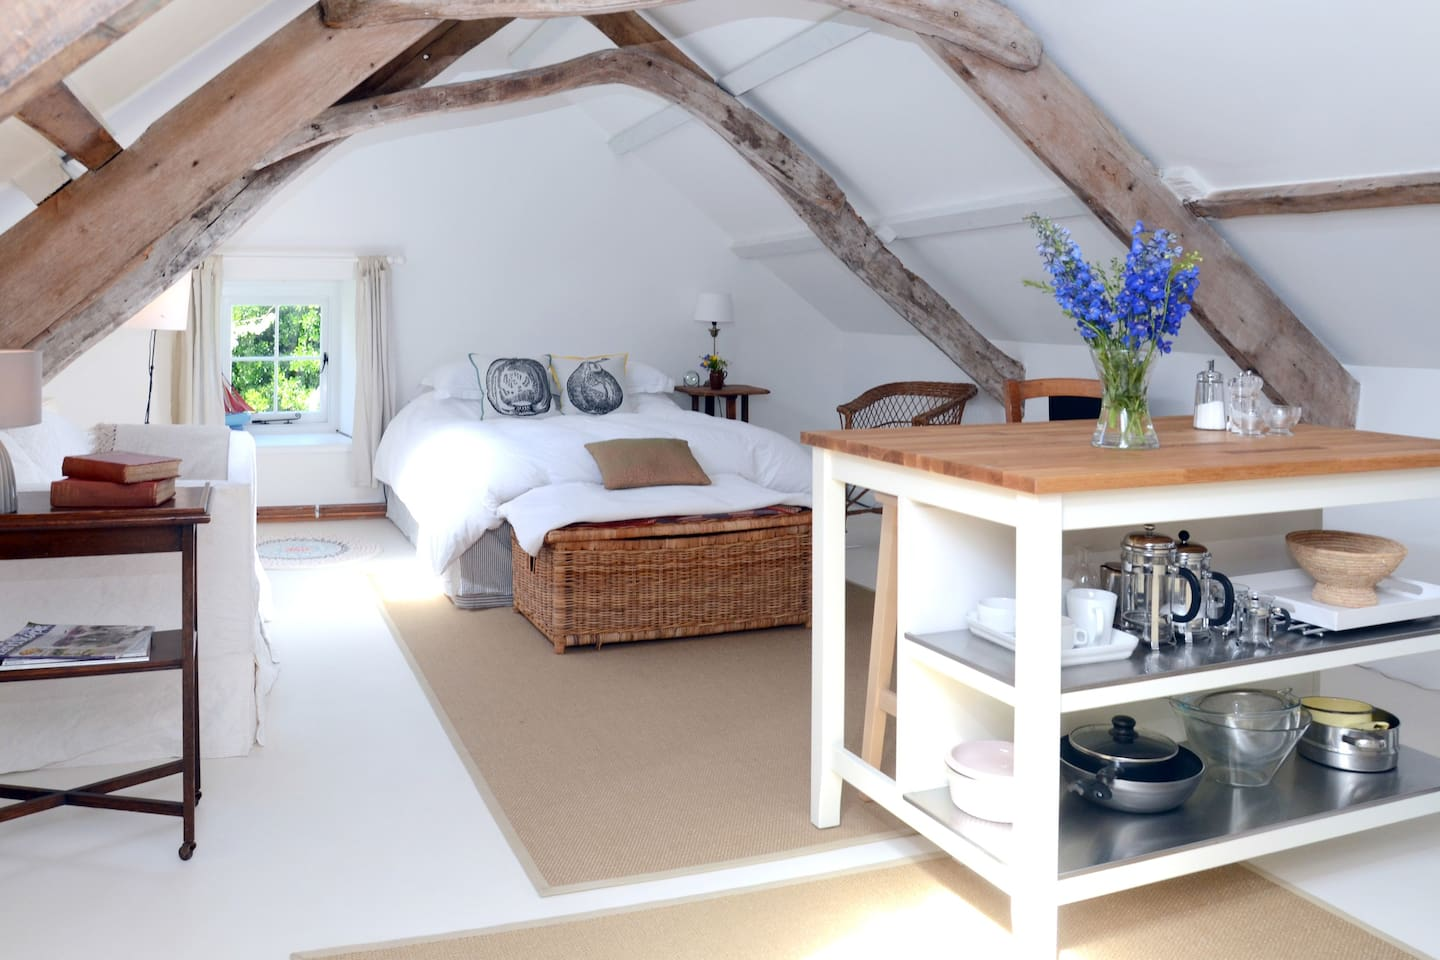 The secluded and private apartment with everything you should need for your stay.